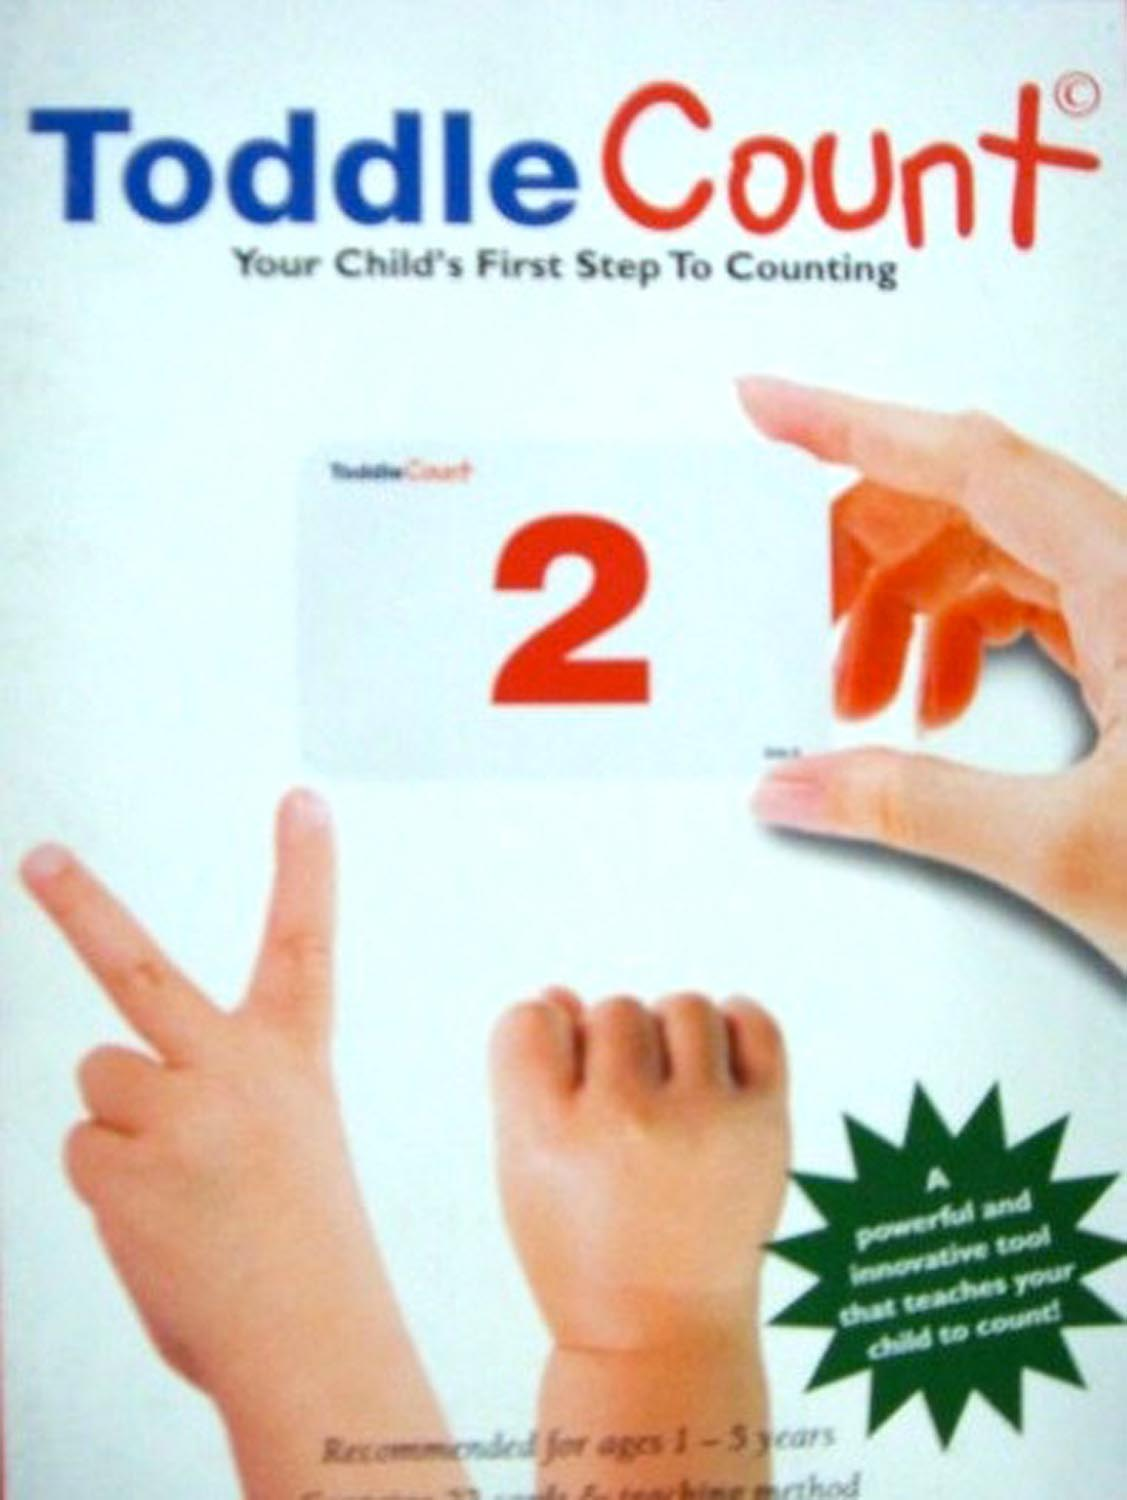 Toddle Count Image